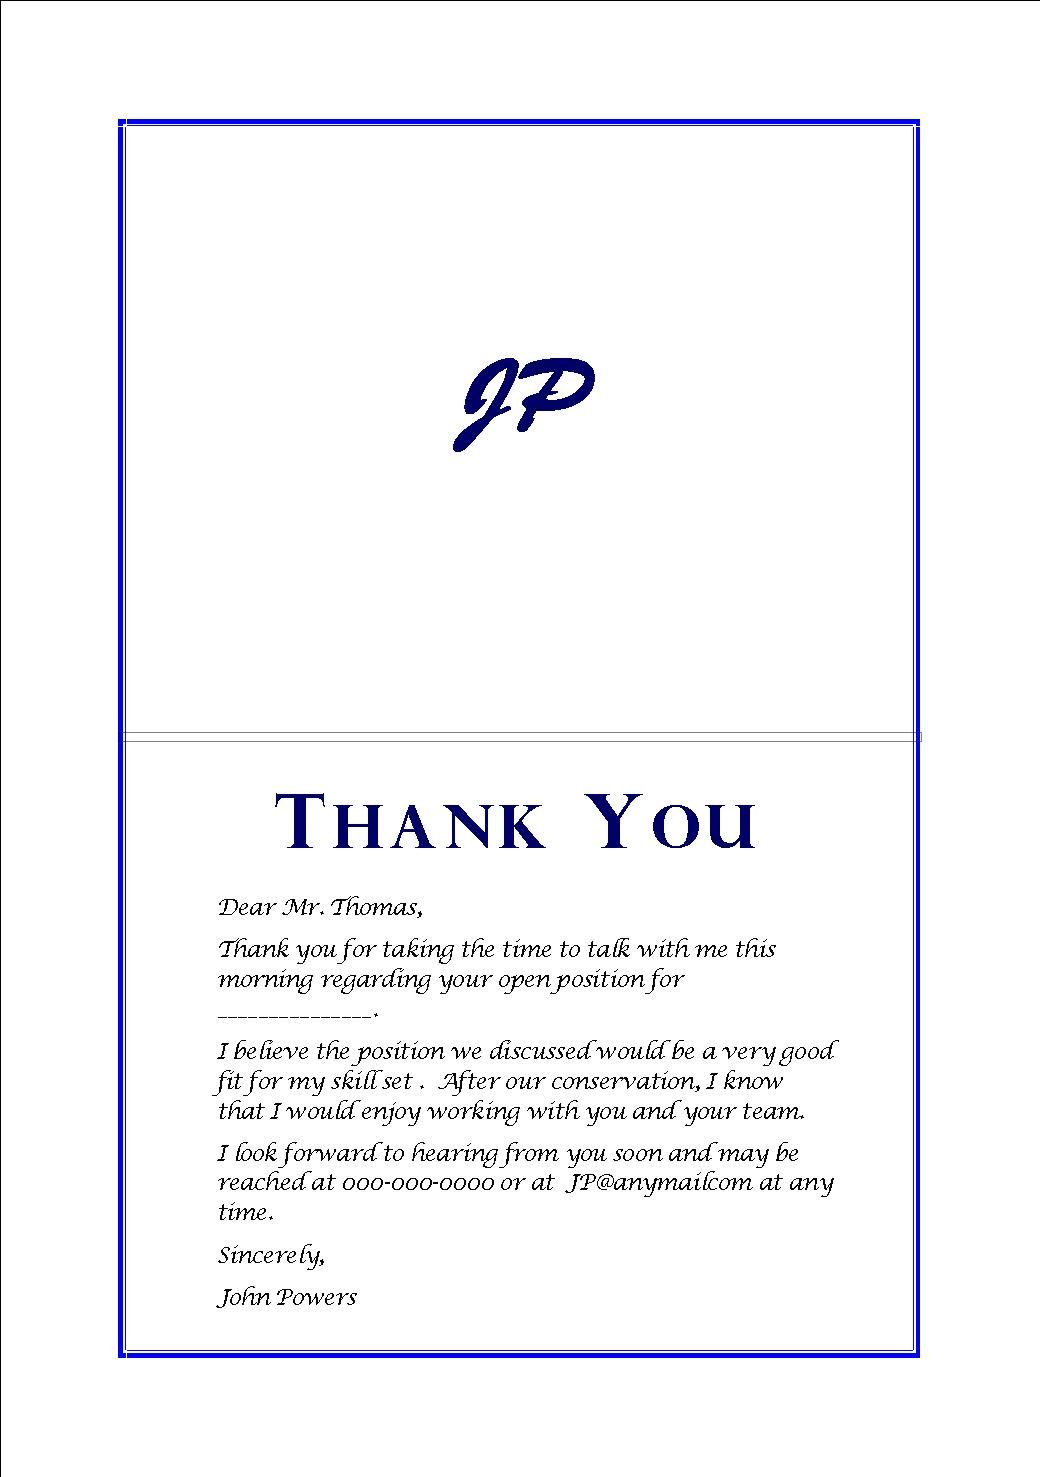 phone interview thank you note example sample war phone interview thank you note example interview thank you note samples for your job search you